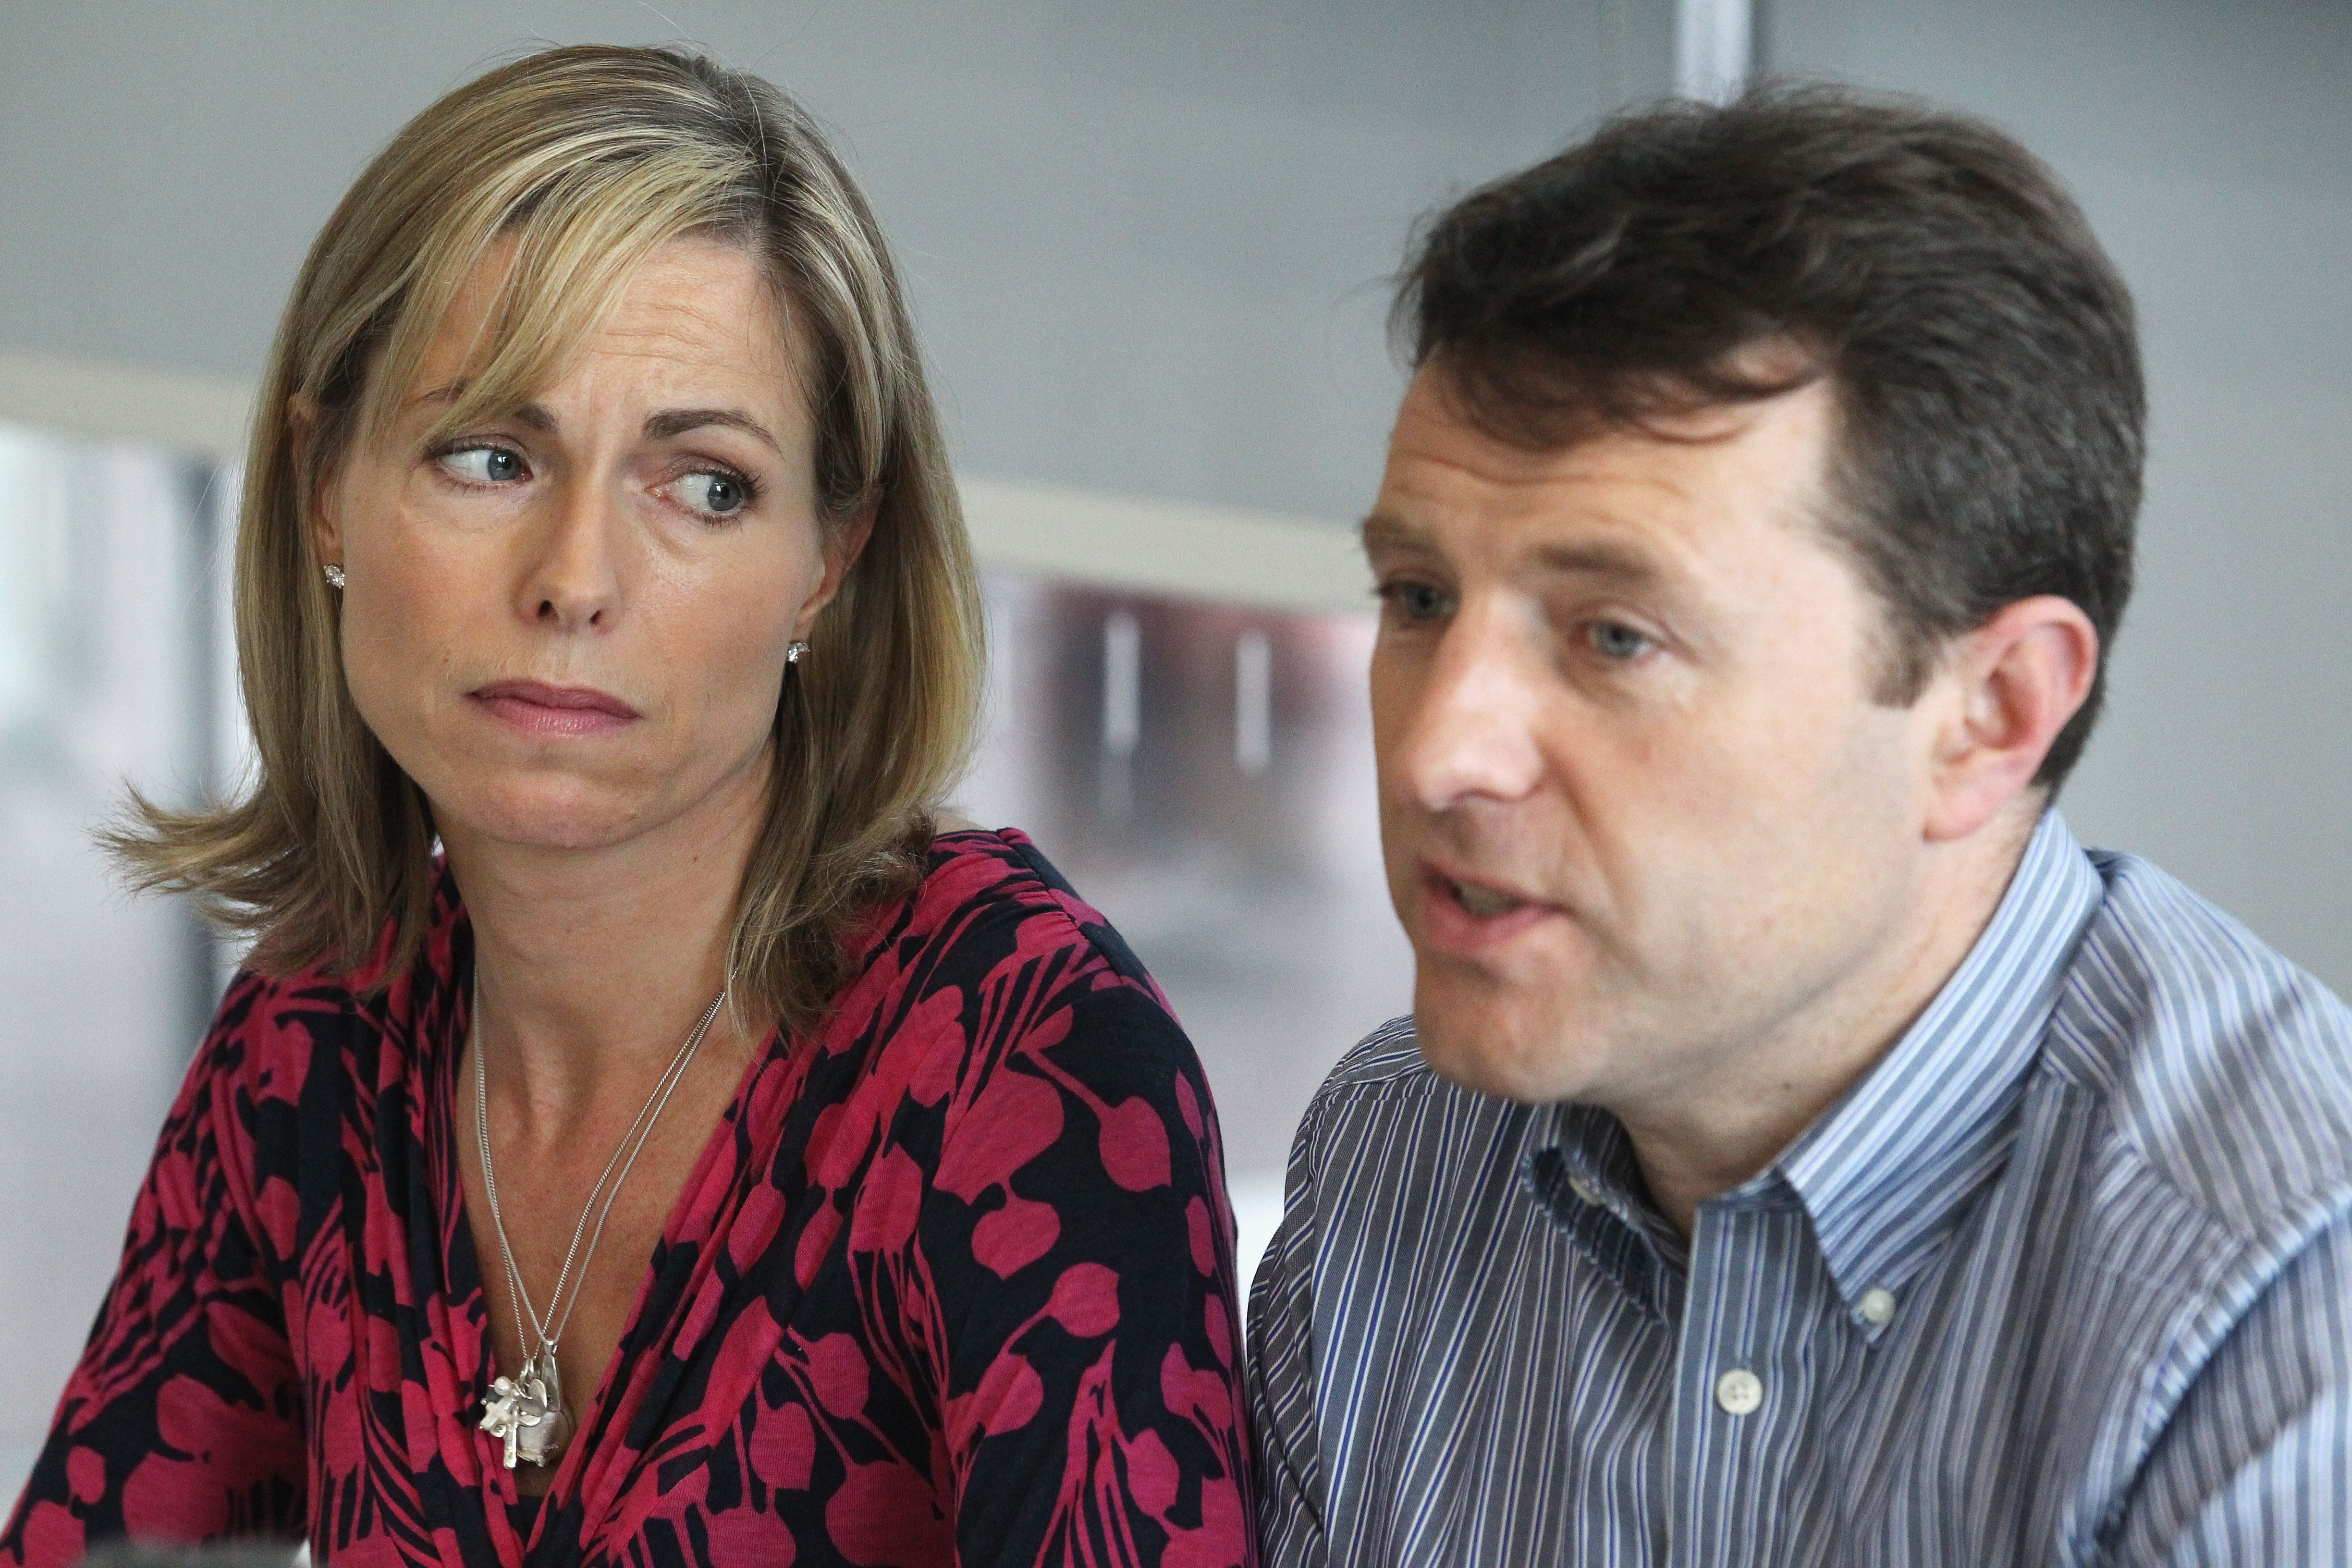 Madeleines Eltern Kate und Gerry McCann | Quelle: Getty Images